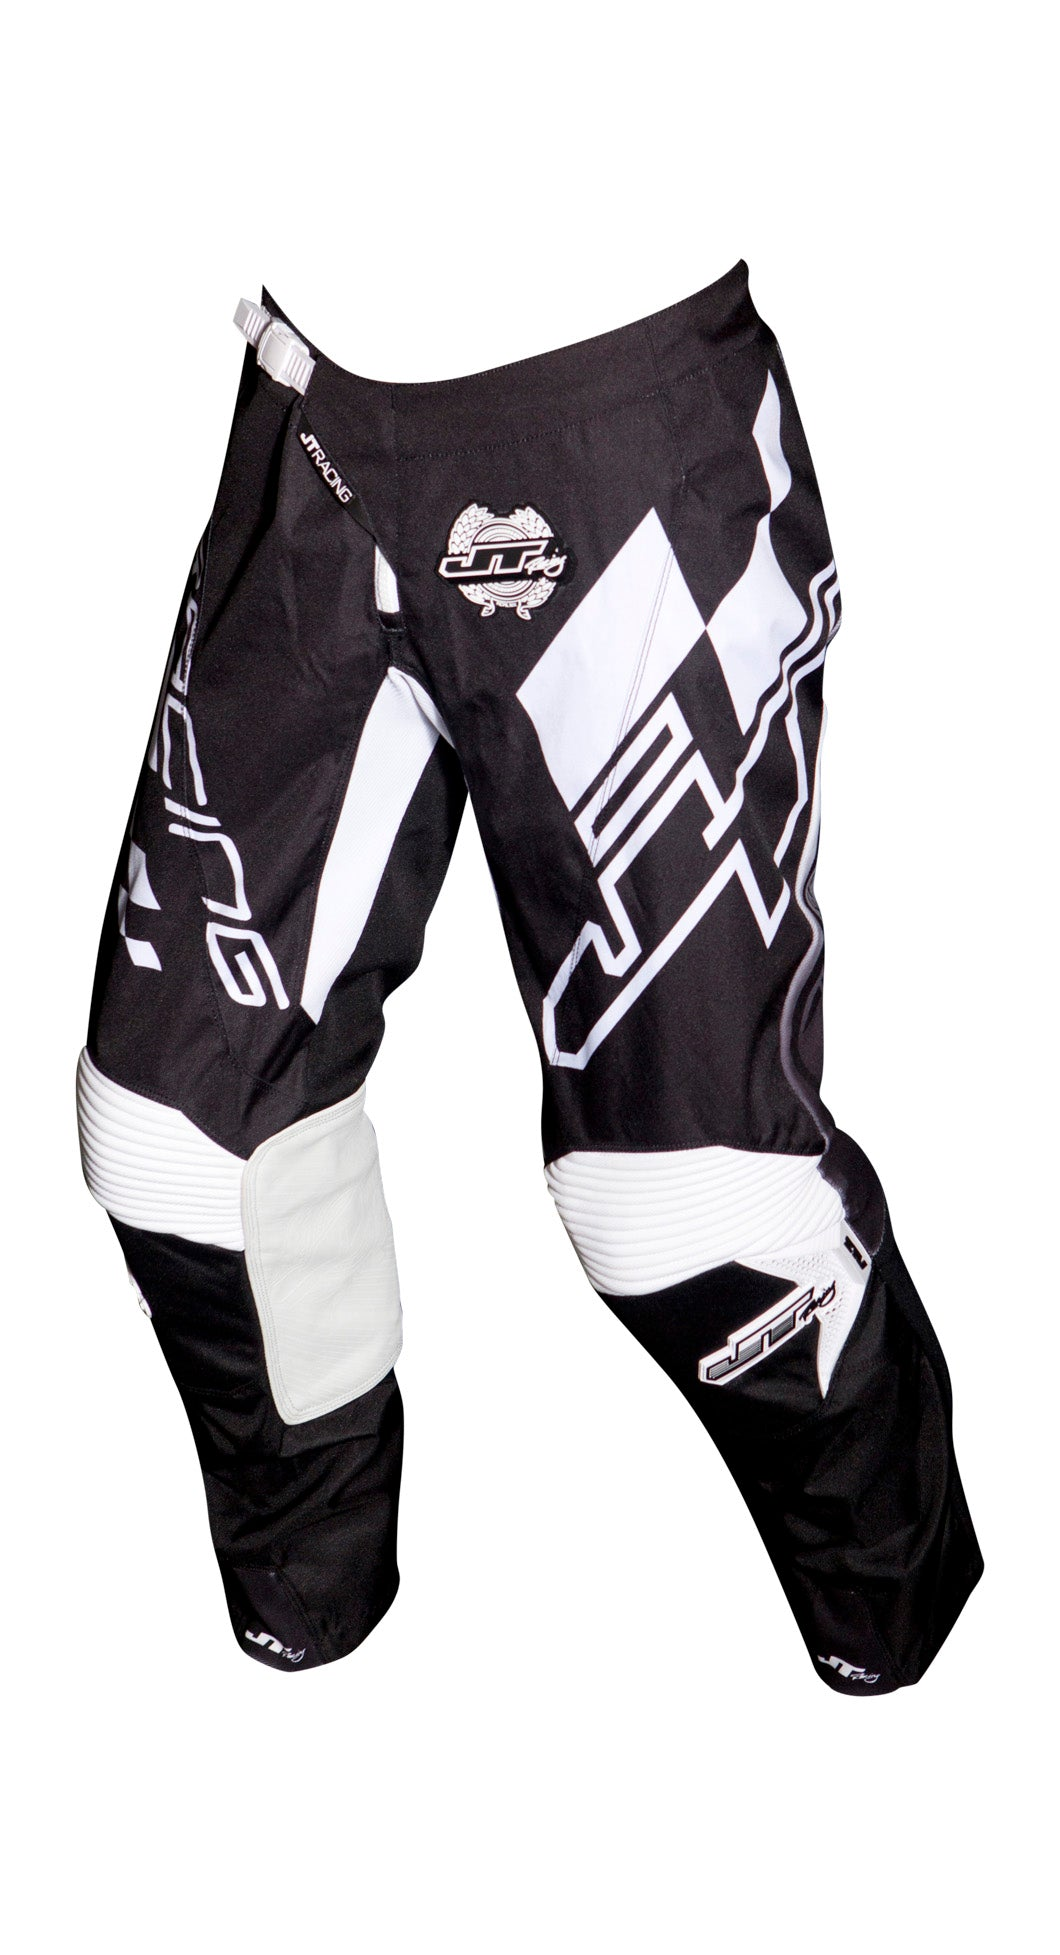 JT RACING USA Hyperlite Checker Pants, Black/White